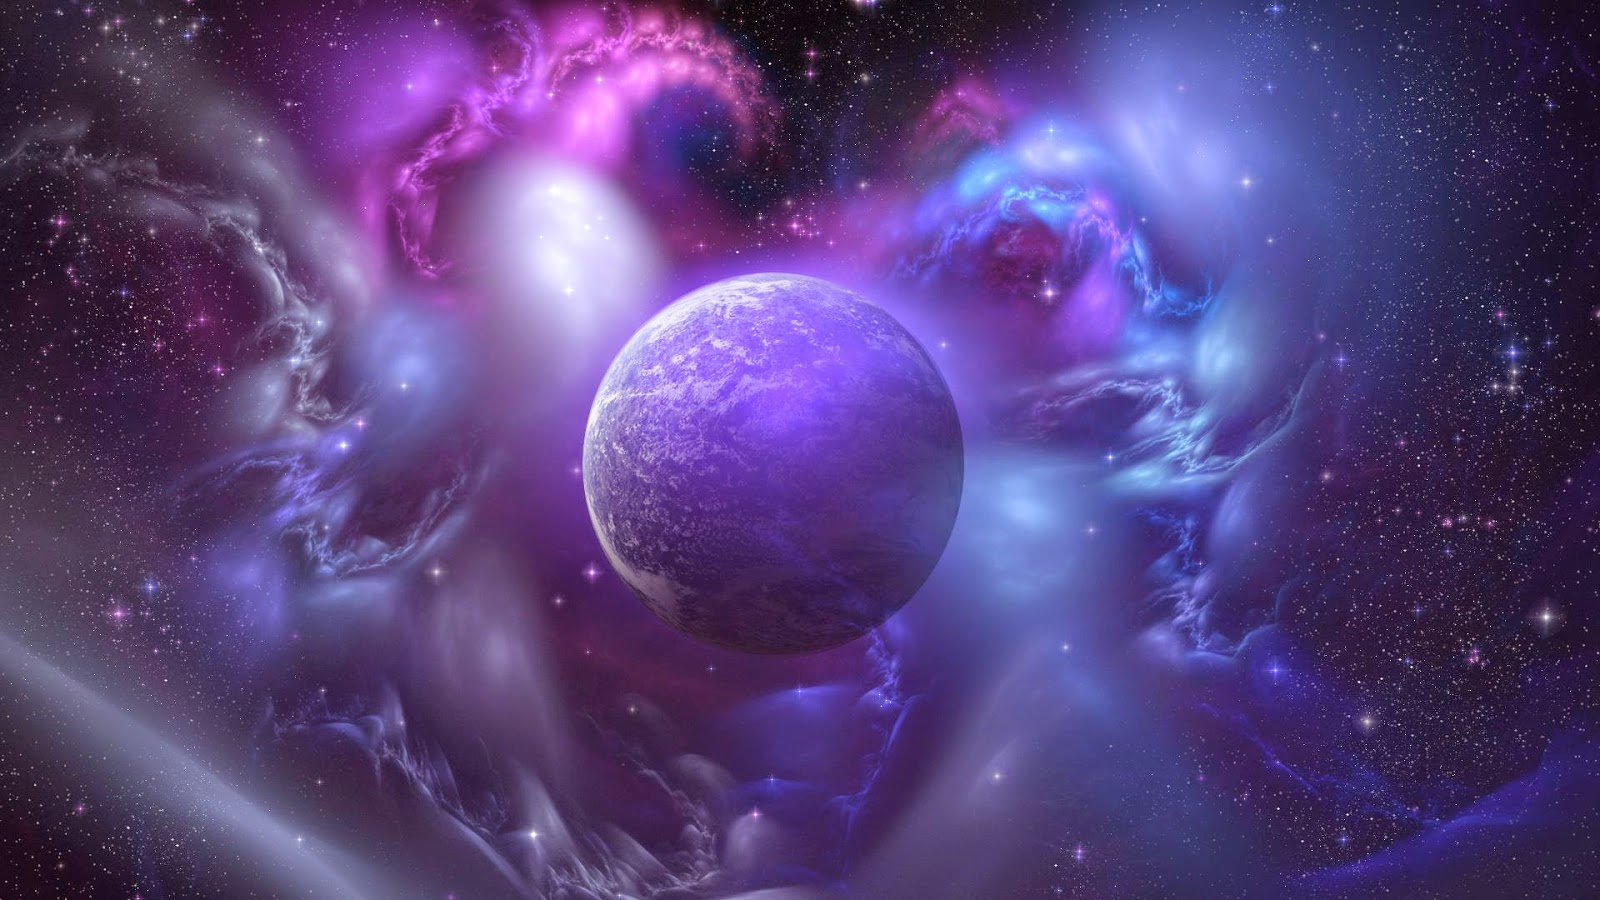 Outer Purple Space   Full HD Desktop Wallpapers 1080p